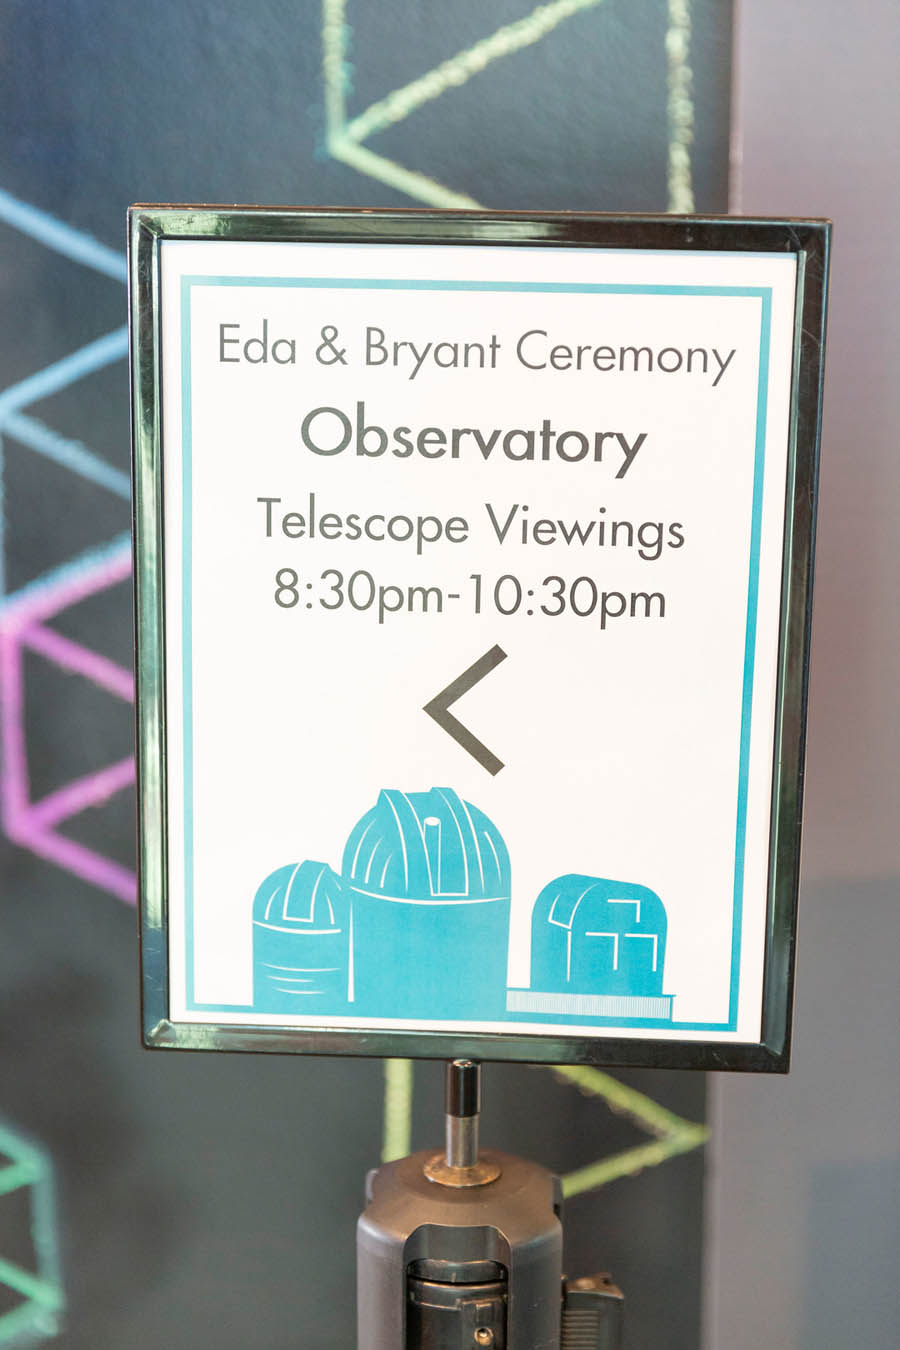 Chabot observatory sign at wedding